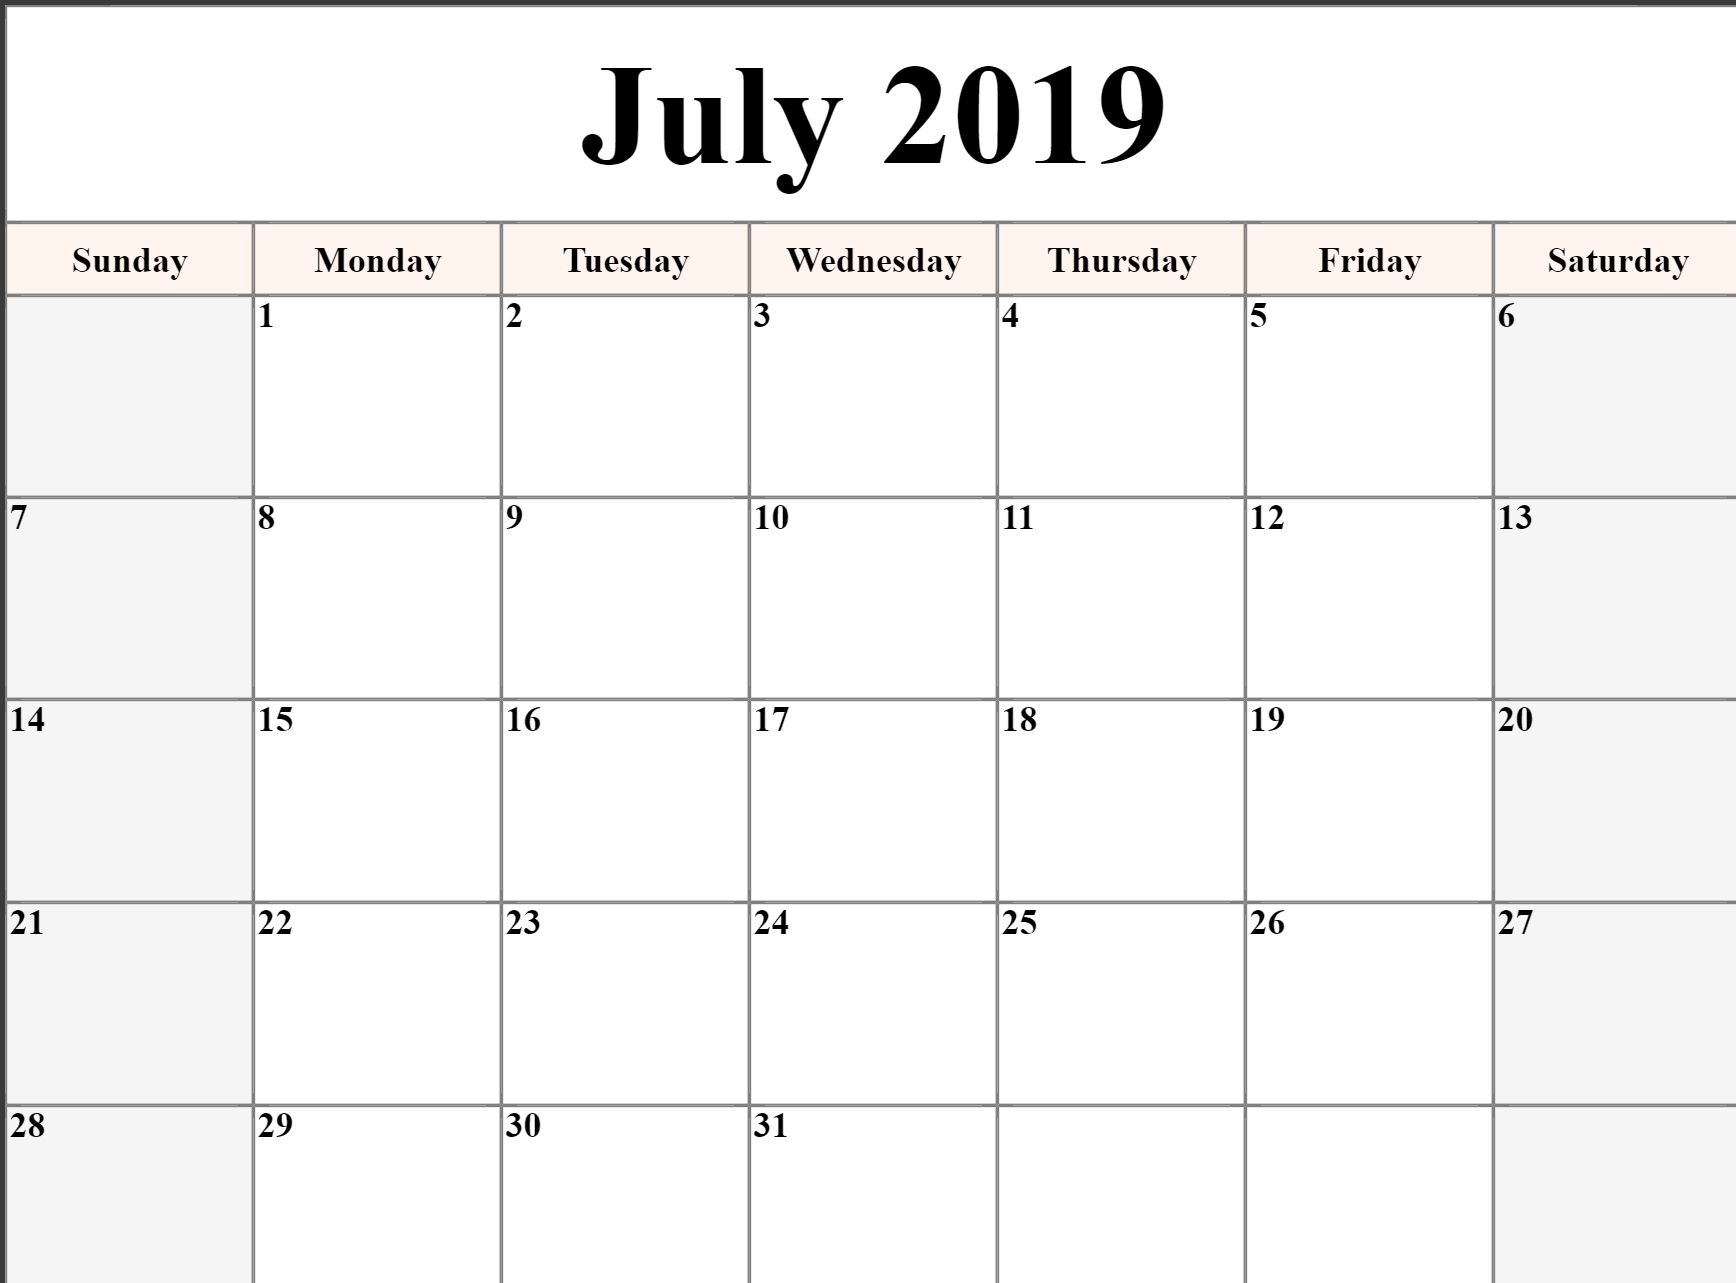 Editable July 2019 Calendar Blank Template Printable Word Pdf Excel intended for Caleners From July 2019 -December 2020 Free Printable